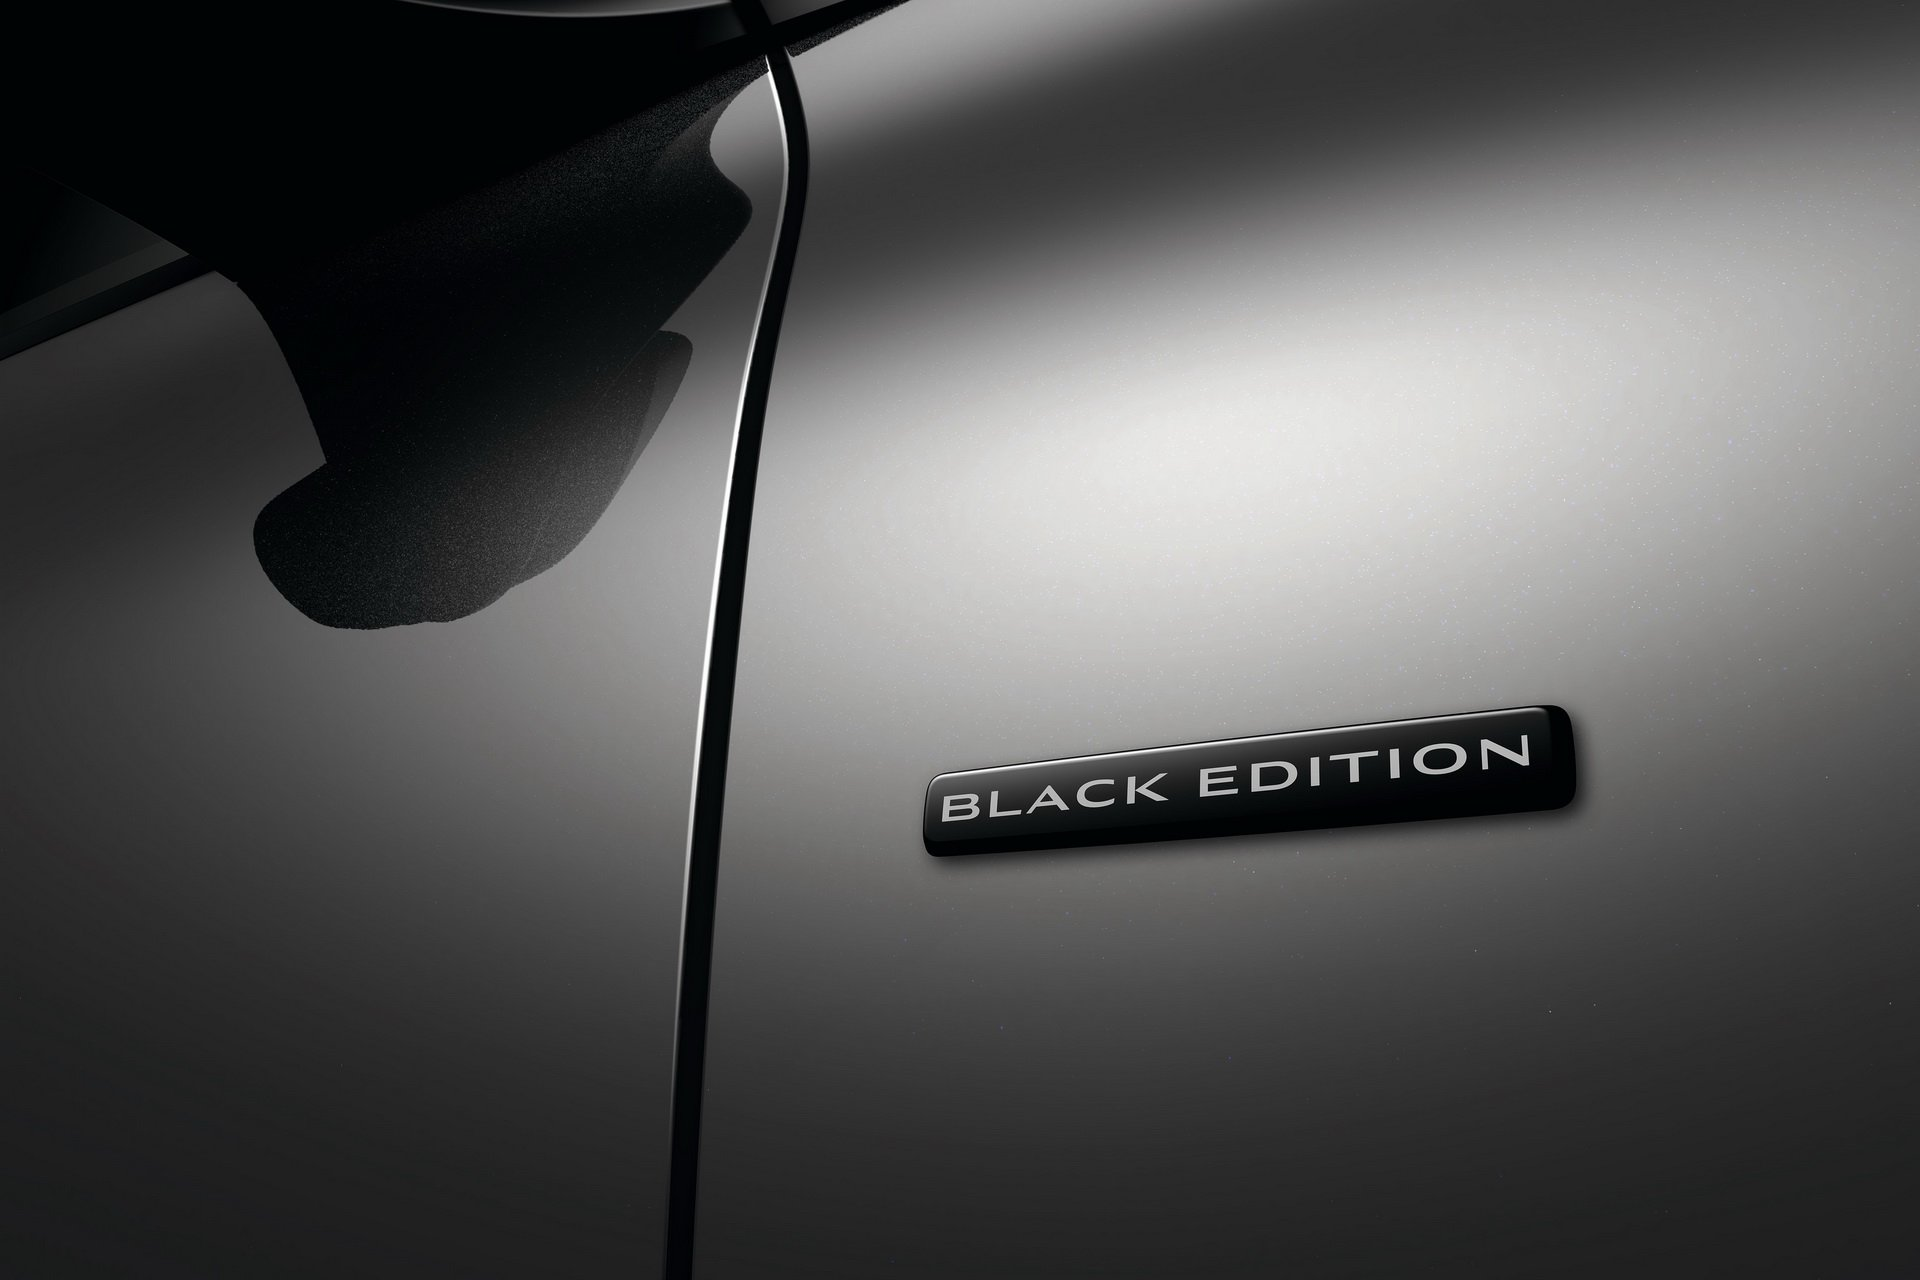 6fd3262a-renault-scenic-black-edition-france-9